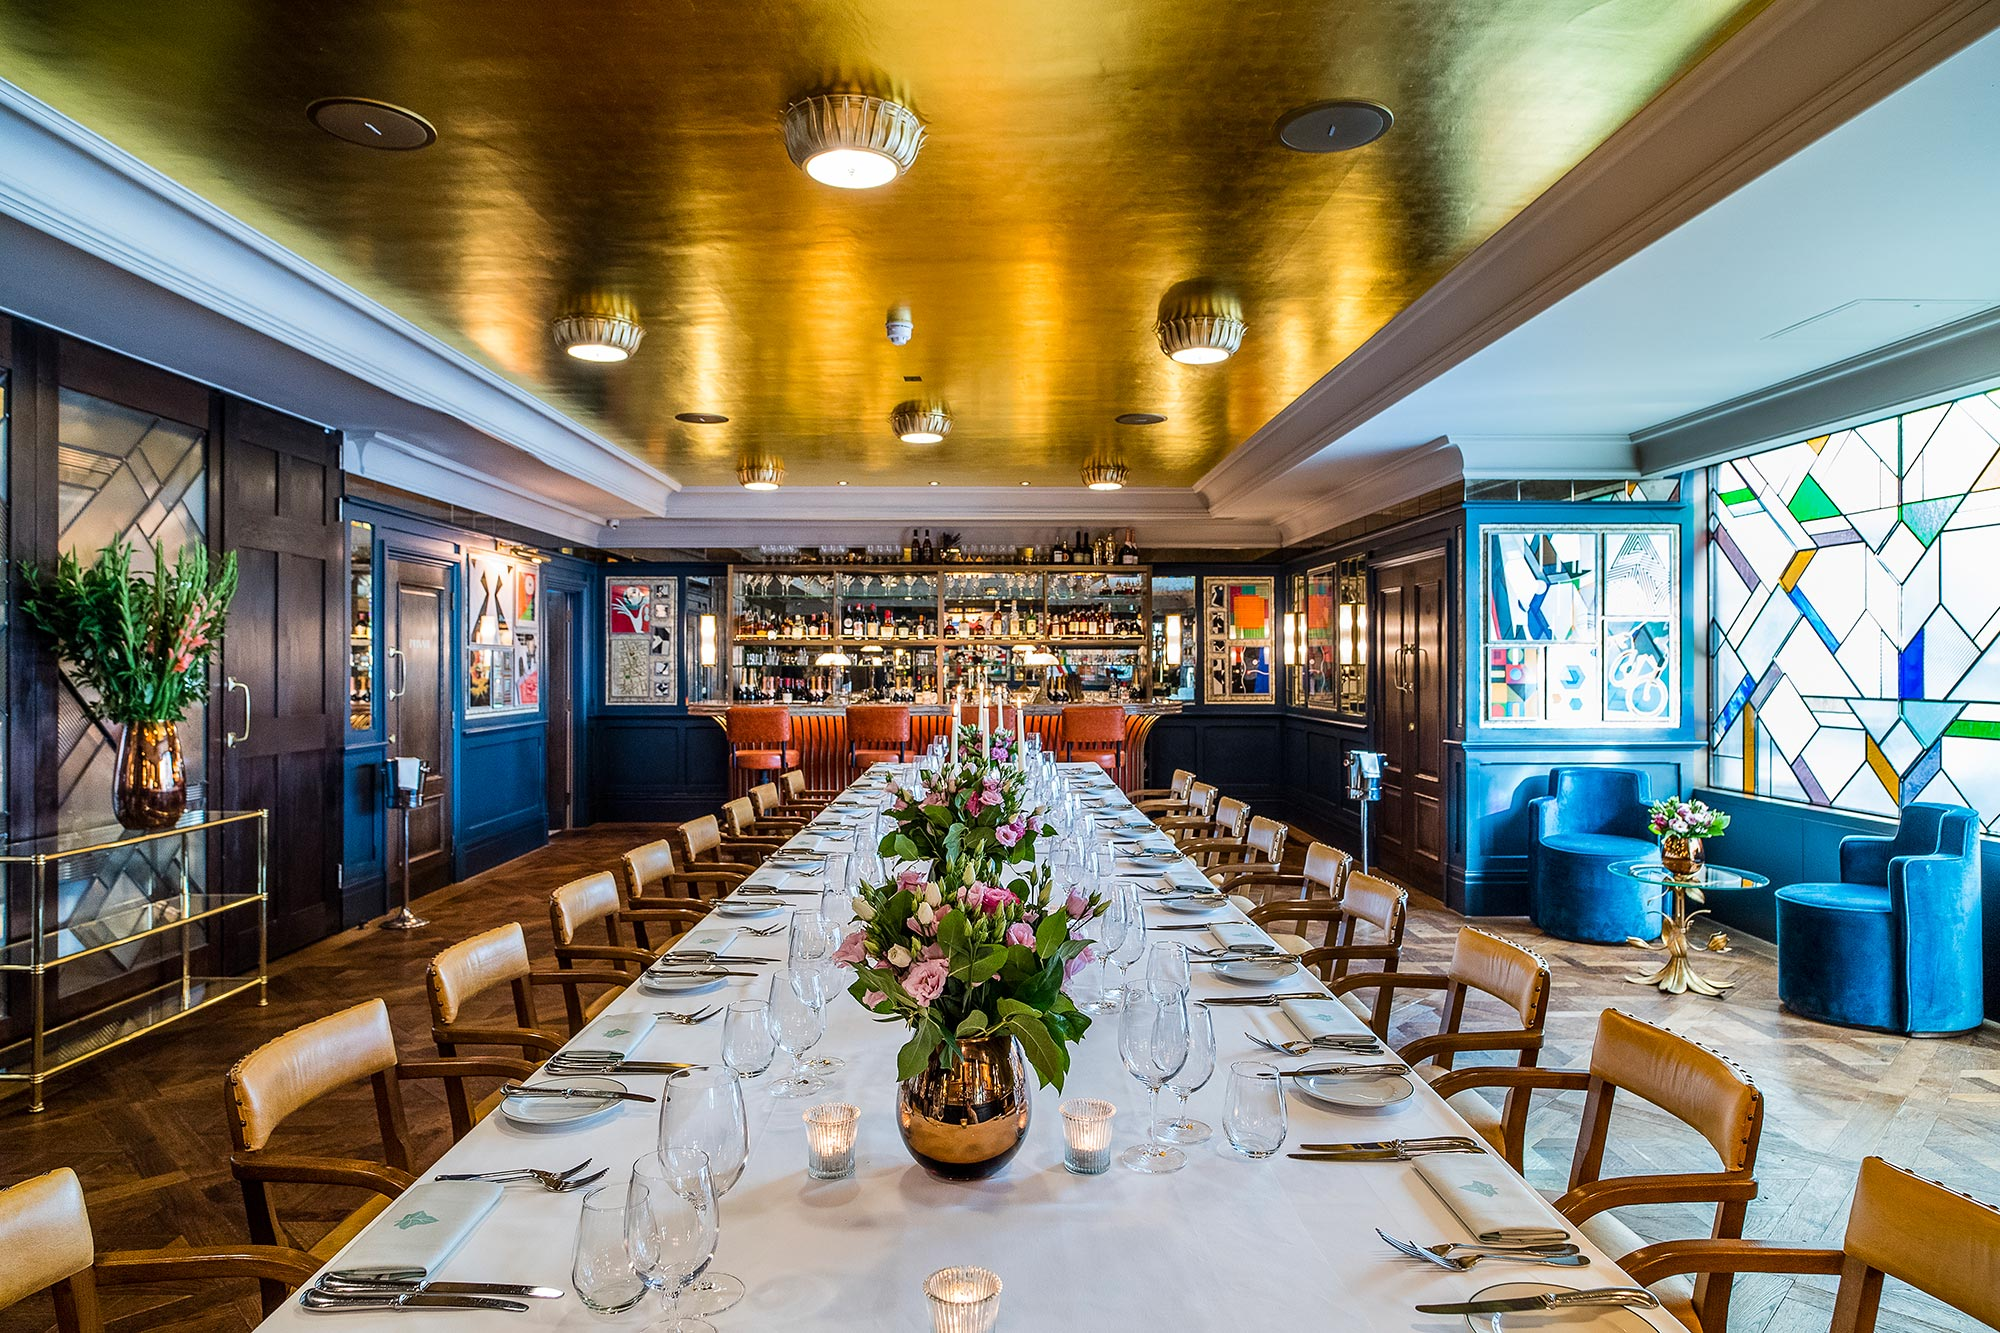 Private Dining Room in Central London - The Ivy Soho Brasserie - The Ivy Soho Brasserie